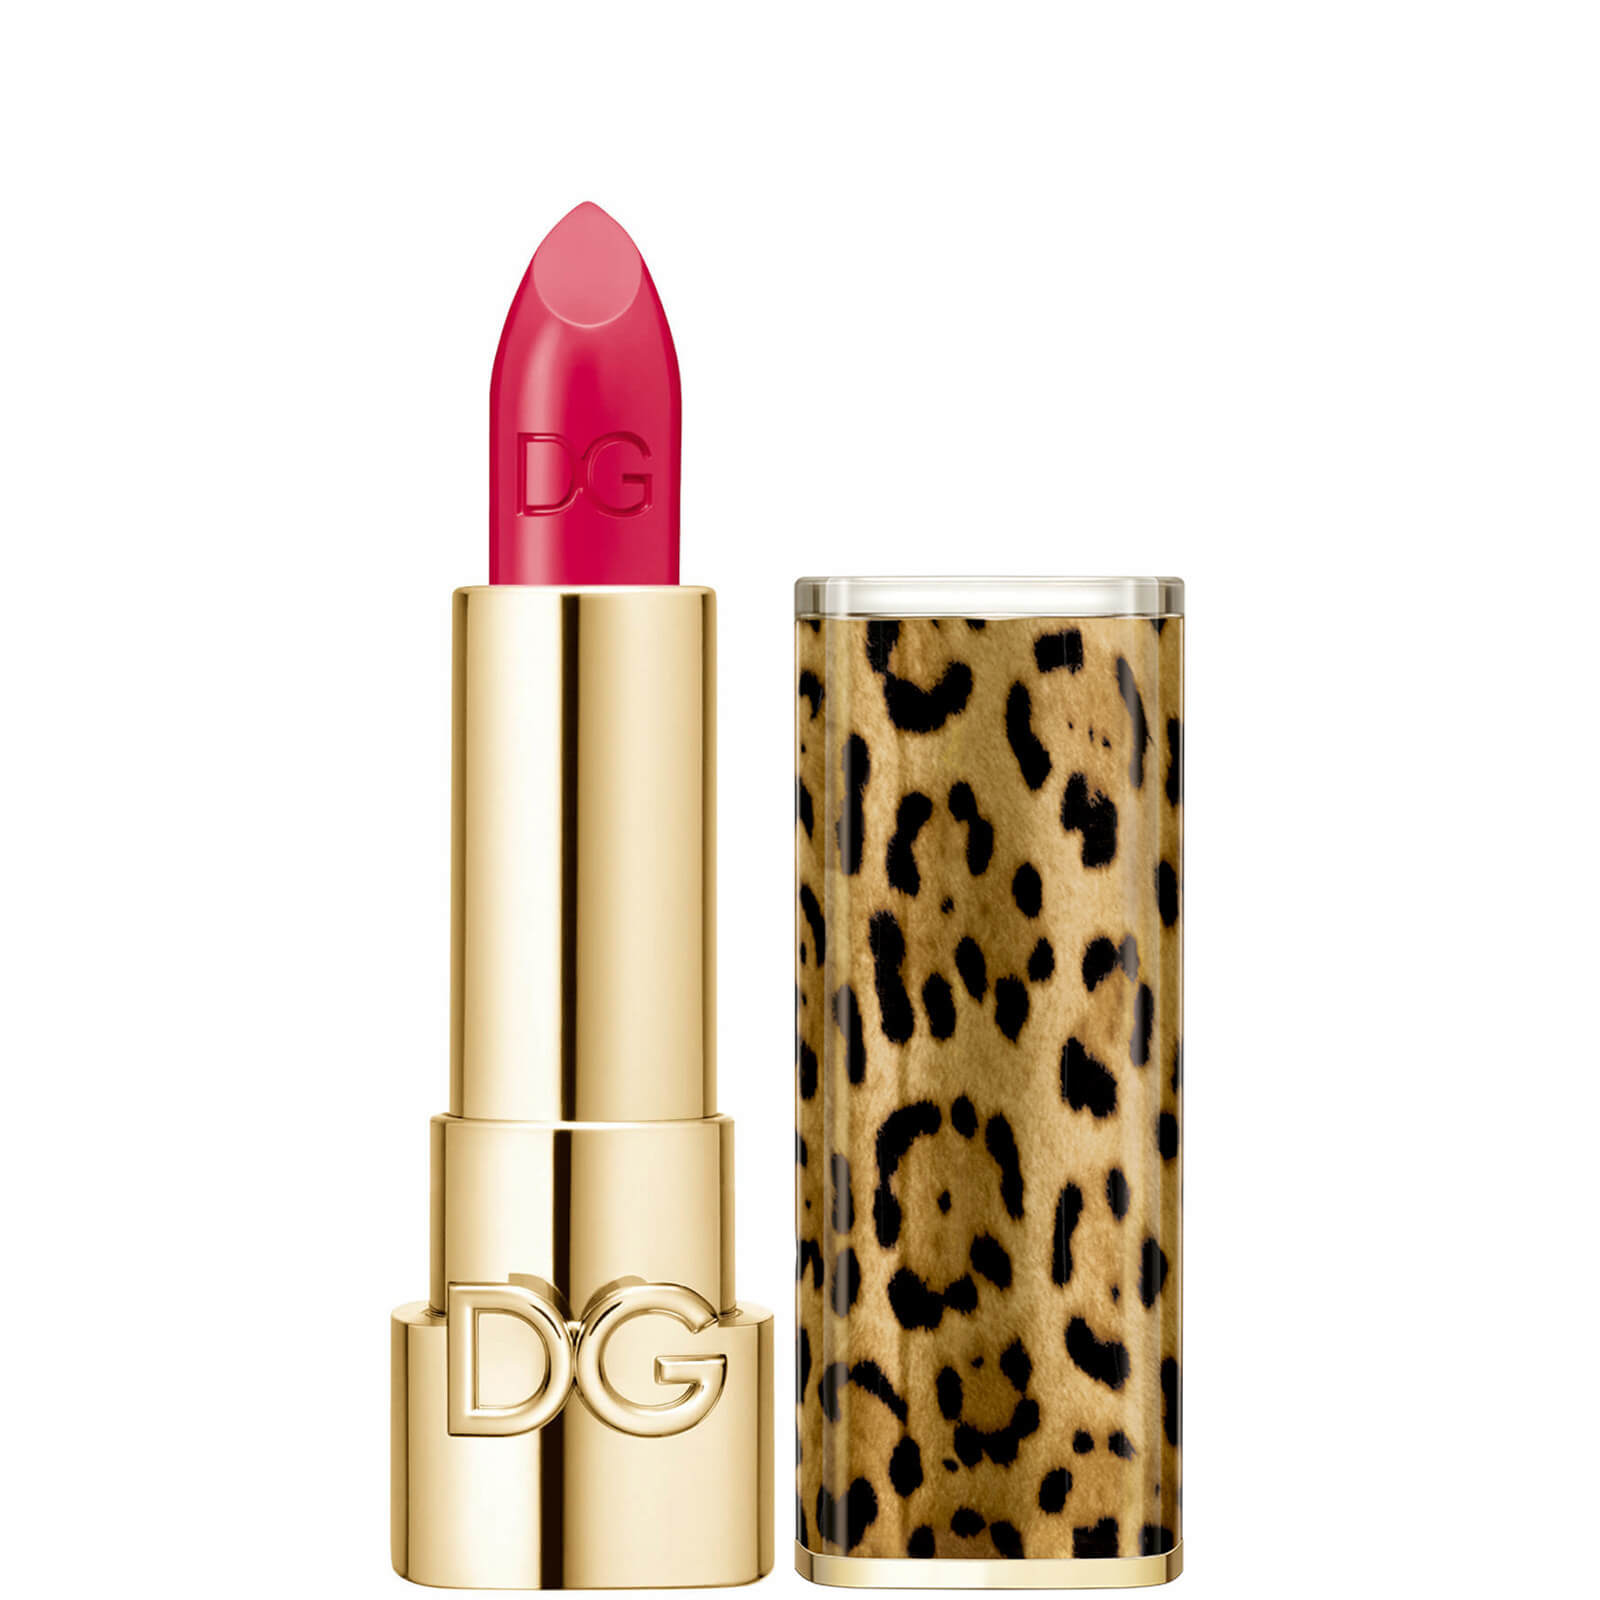 Dolce&Gabbana The Only One Lipstick + Cap (Animalier) (Various Shades) - 250 Gummy Berry